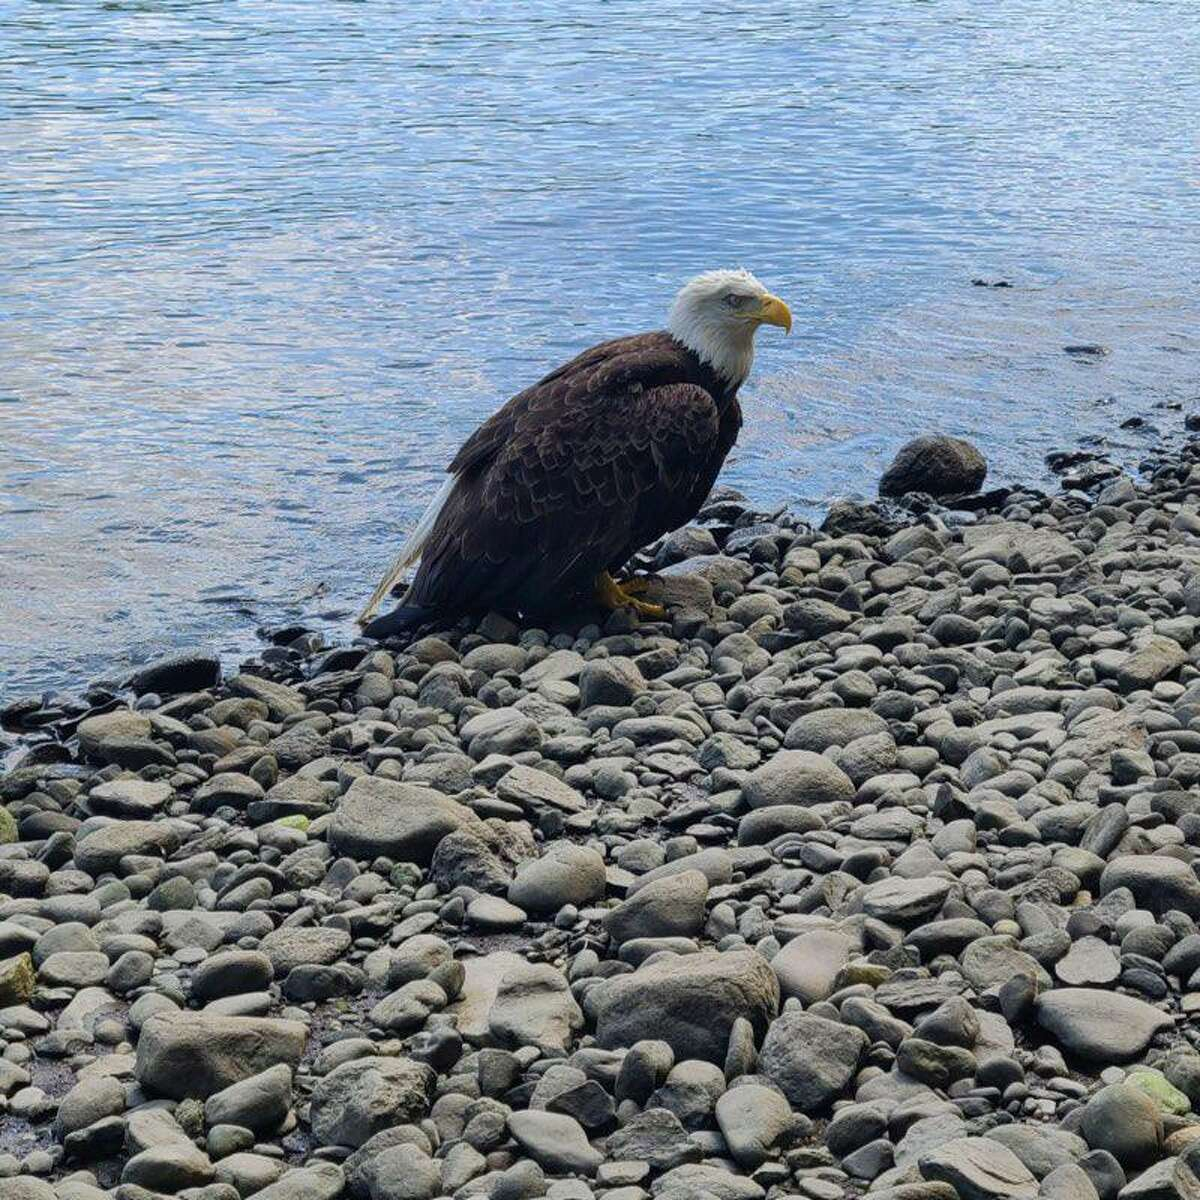 Shelton firefighters from Pine Rock Park, onboard Marine 1, assisted the state Department of Energy and Environmental Protection (DEEP) in recovering an injured bald eagle from the Housatonic River Saturday, July 31, 2021.